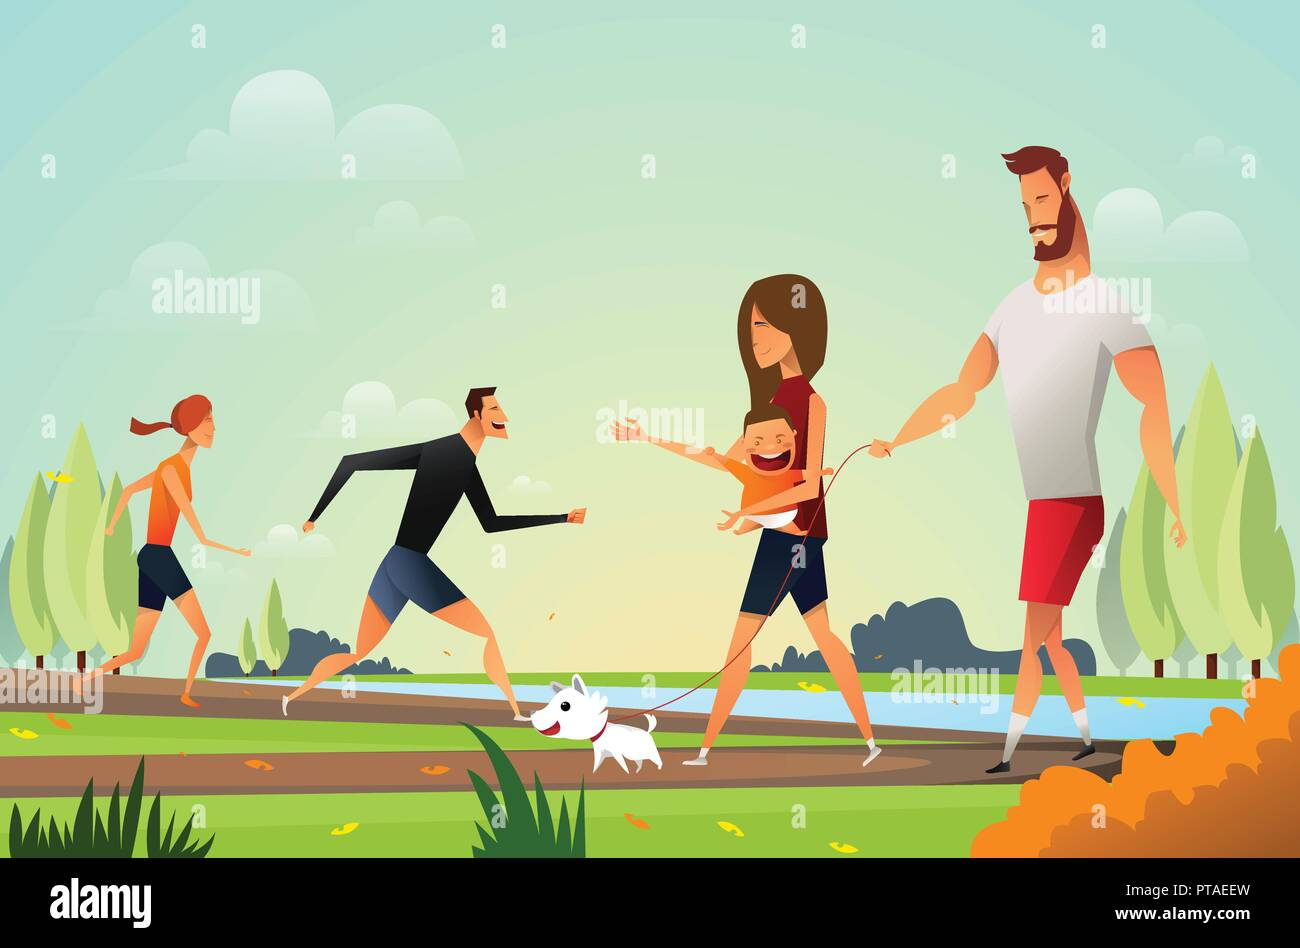 Happy young family with a little dog in park and young couple people walking. Father and moter in the park. Outdoor landscape. - Stock Vector